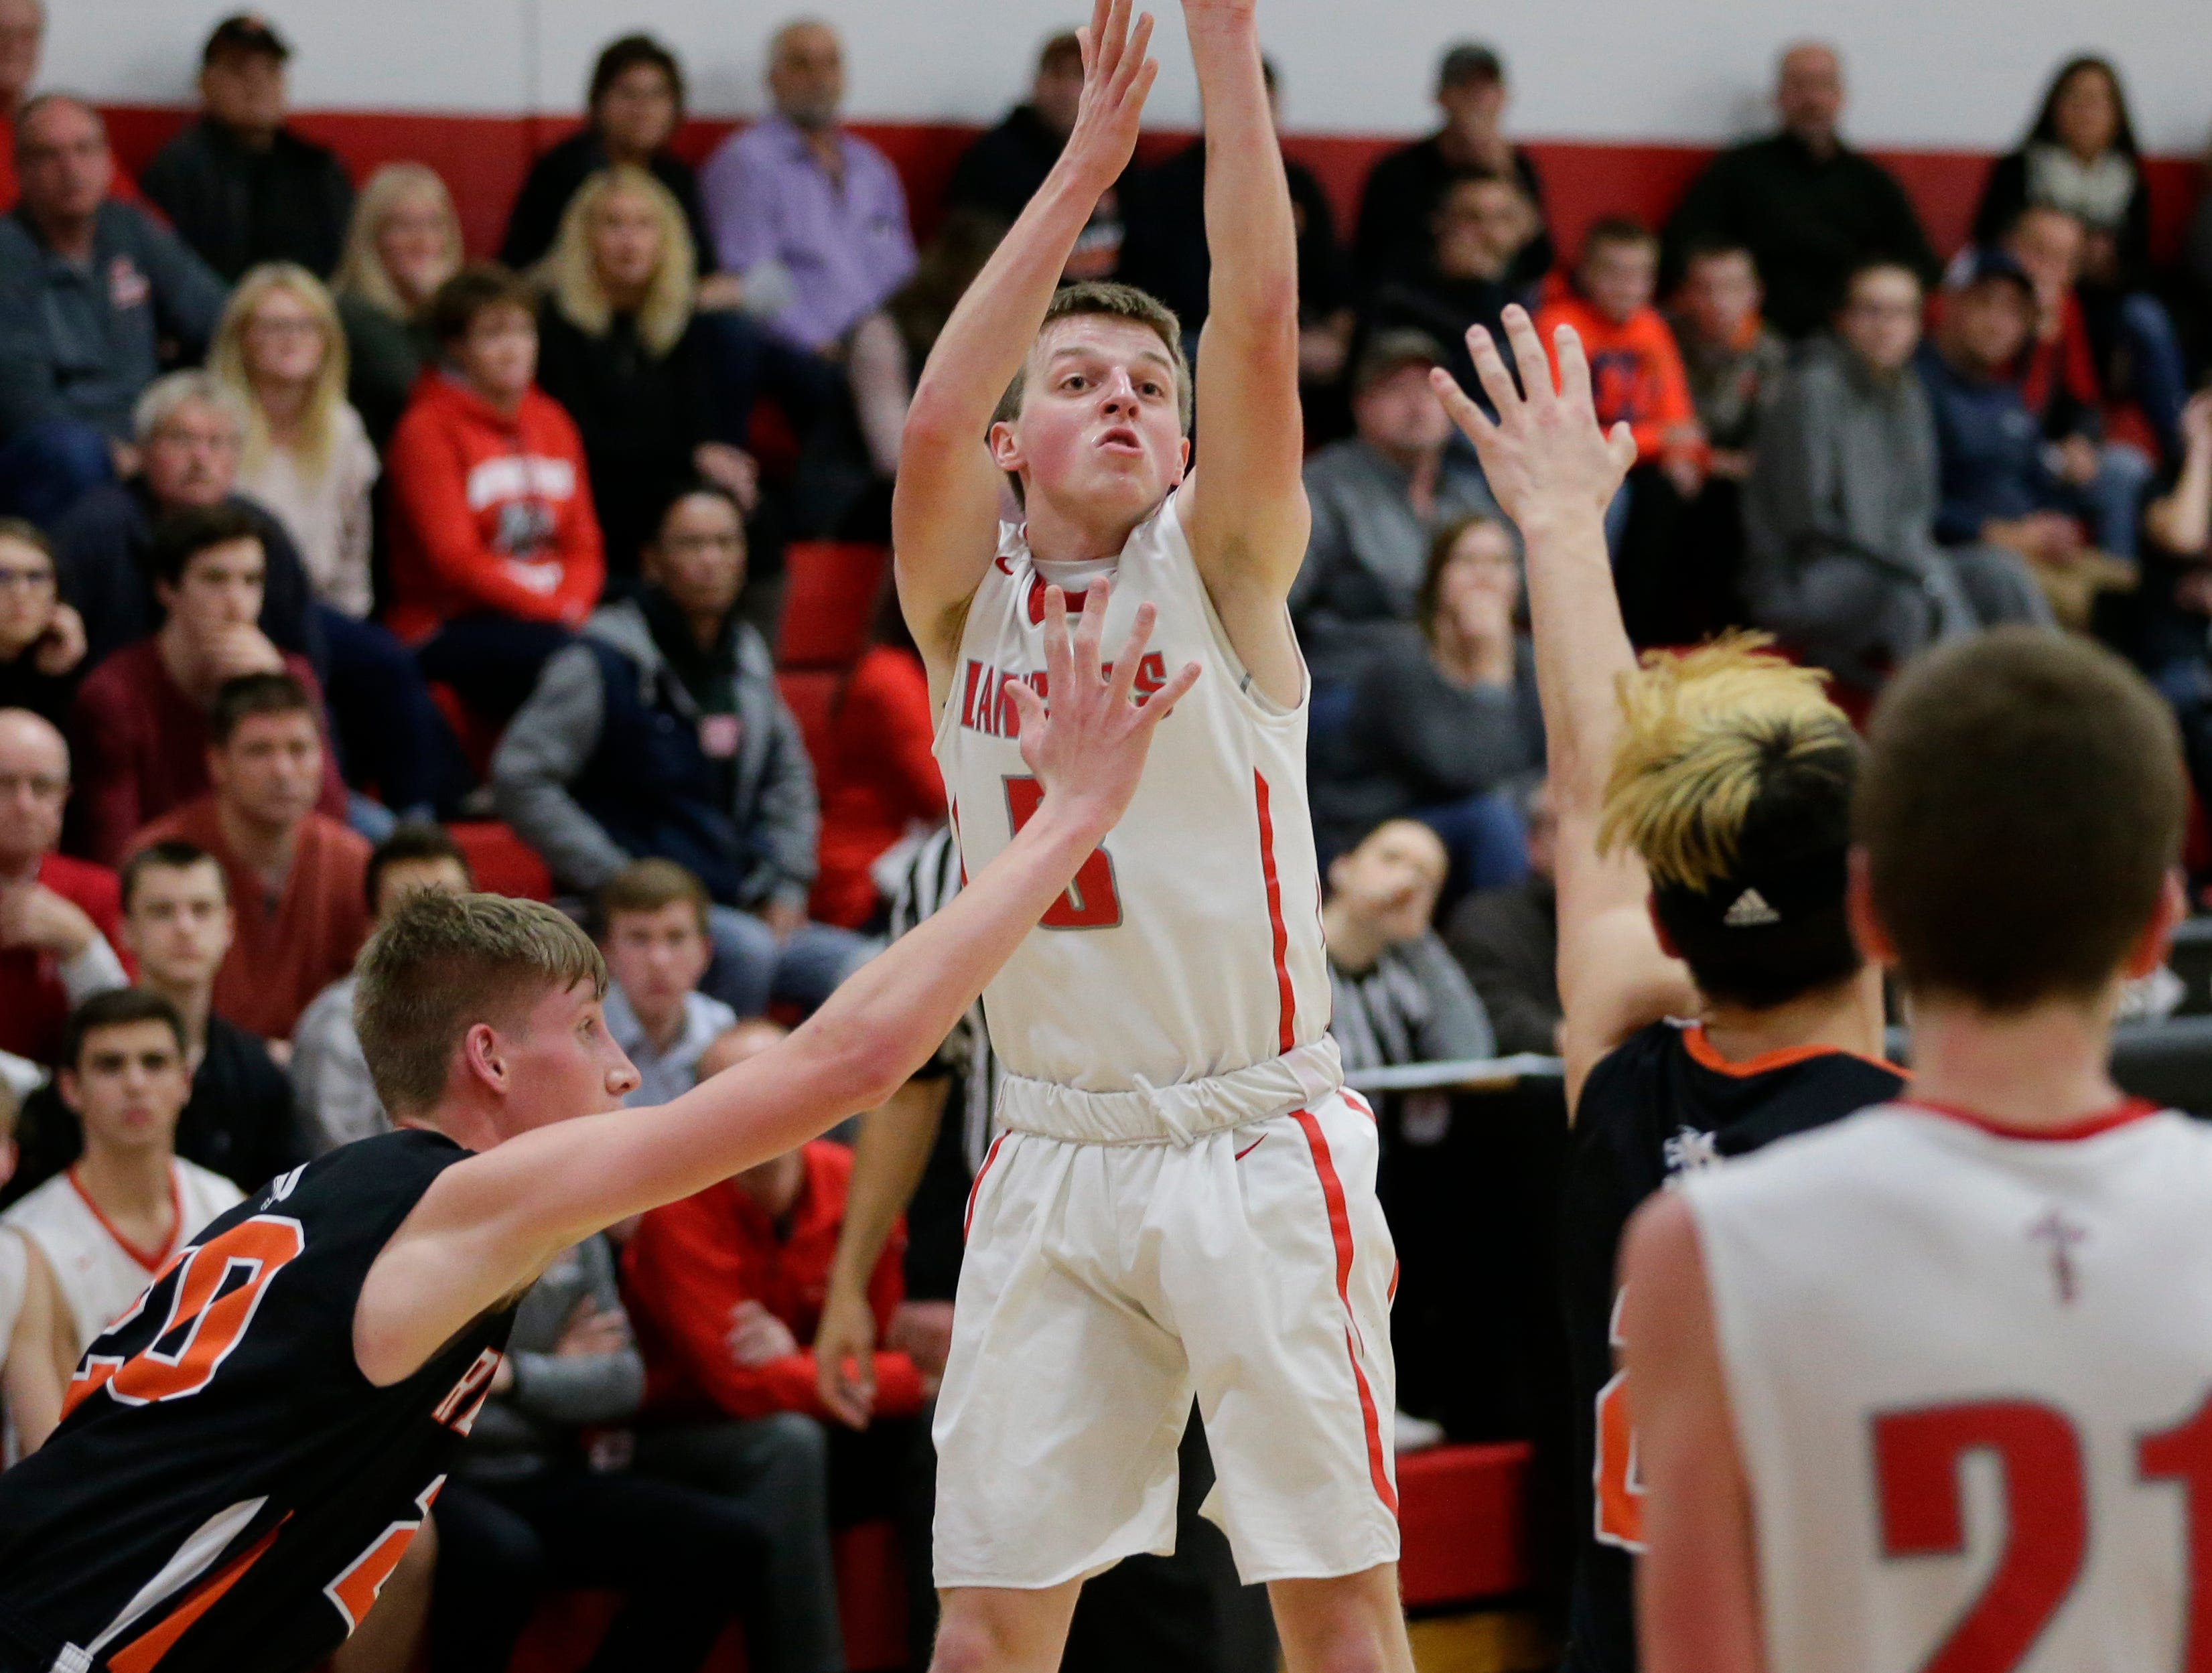 Manitowoc Lutheran's Trey Zastrow shoots against Reedsville at Manitowoc Lutheran High School Thursday, December 20, 2018, in Manitowoc, Wis. Joshua Clark/USA TODAY NETWORK-Wisconsin